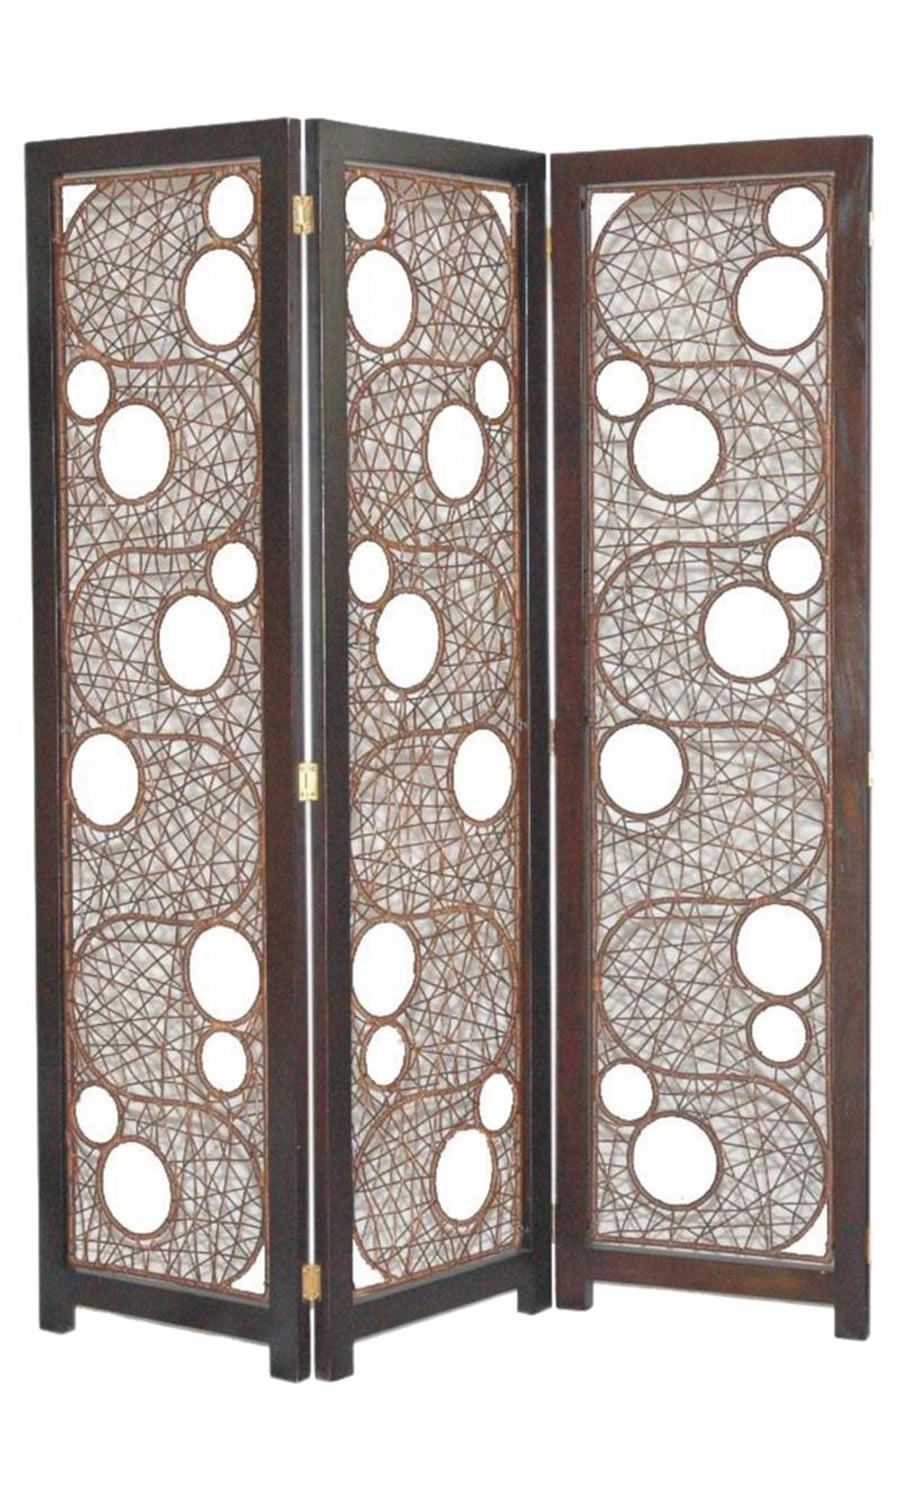 Unique room dividers for home accessories cascade with 3 fold folding screens room dividers - Decorative partitions room divider ...